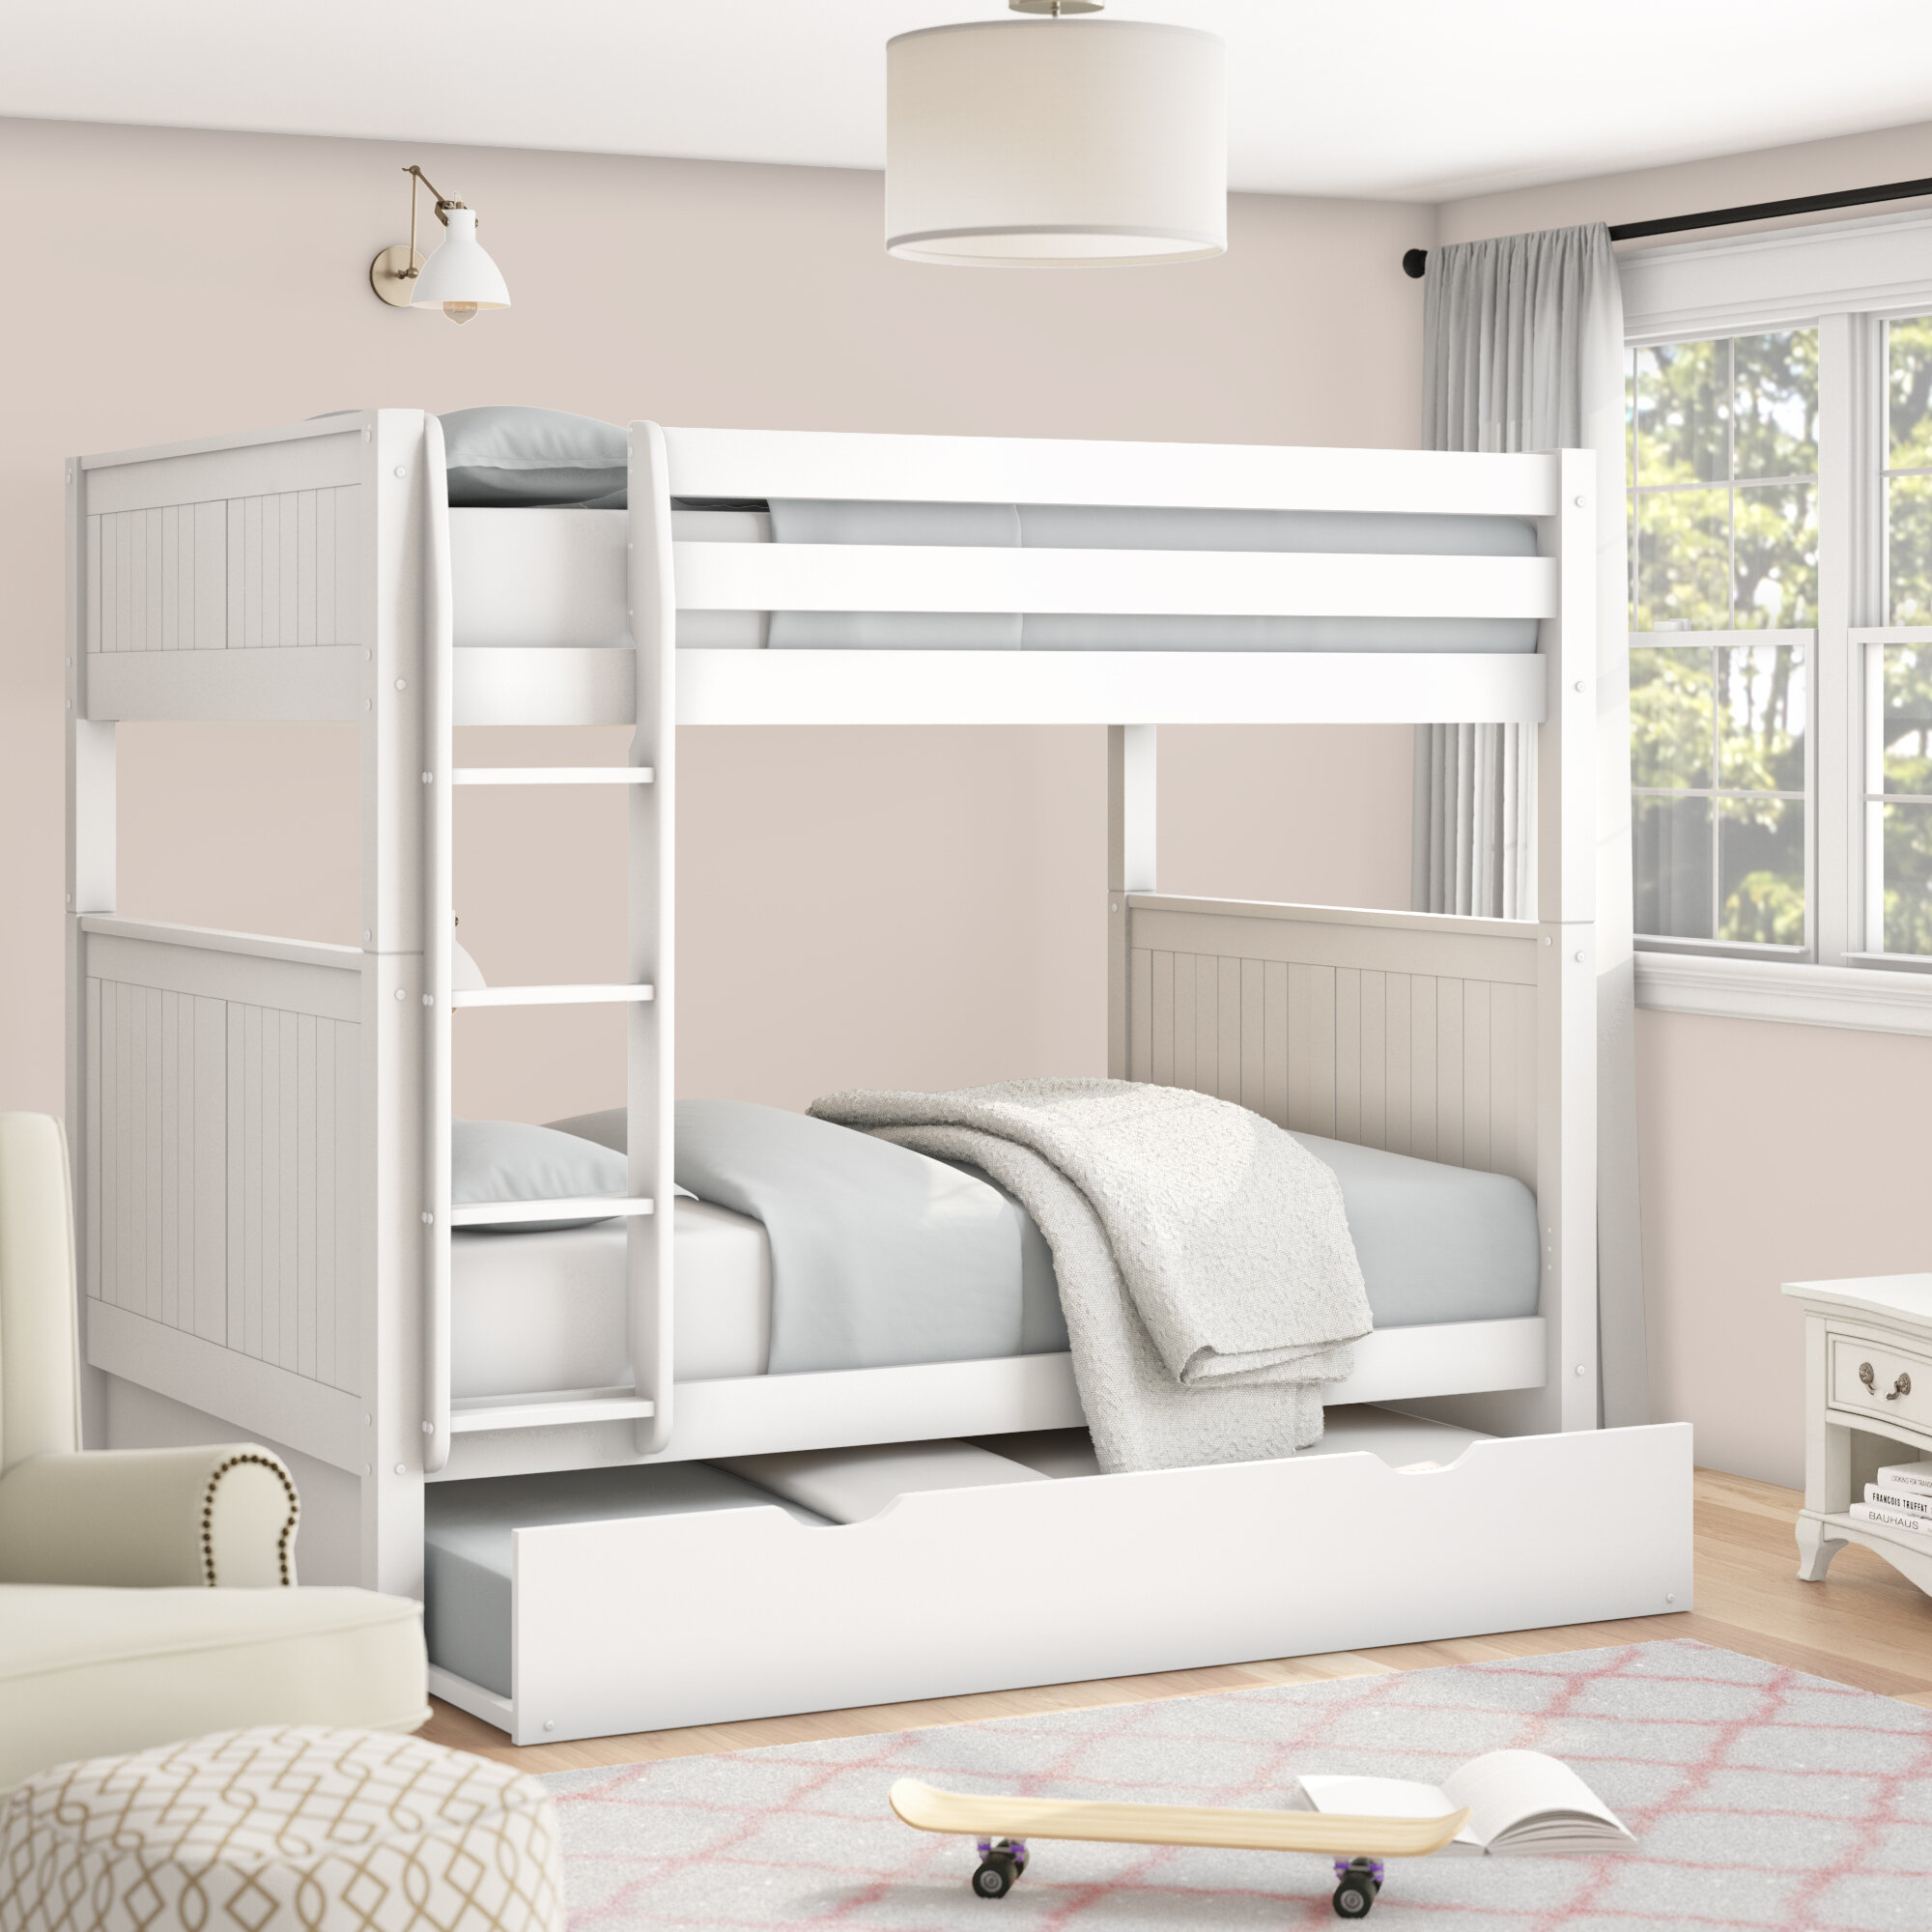 Amani Full Over Full Bunk Bed With Trundle Cheaper Than Retail Price Buy Clothing Accessories And Lifestyle Products For Women Men